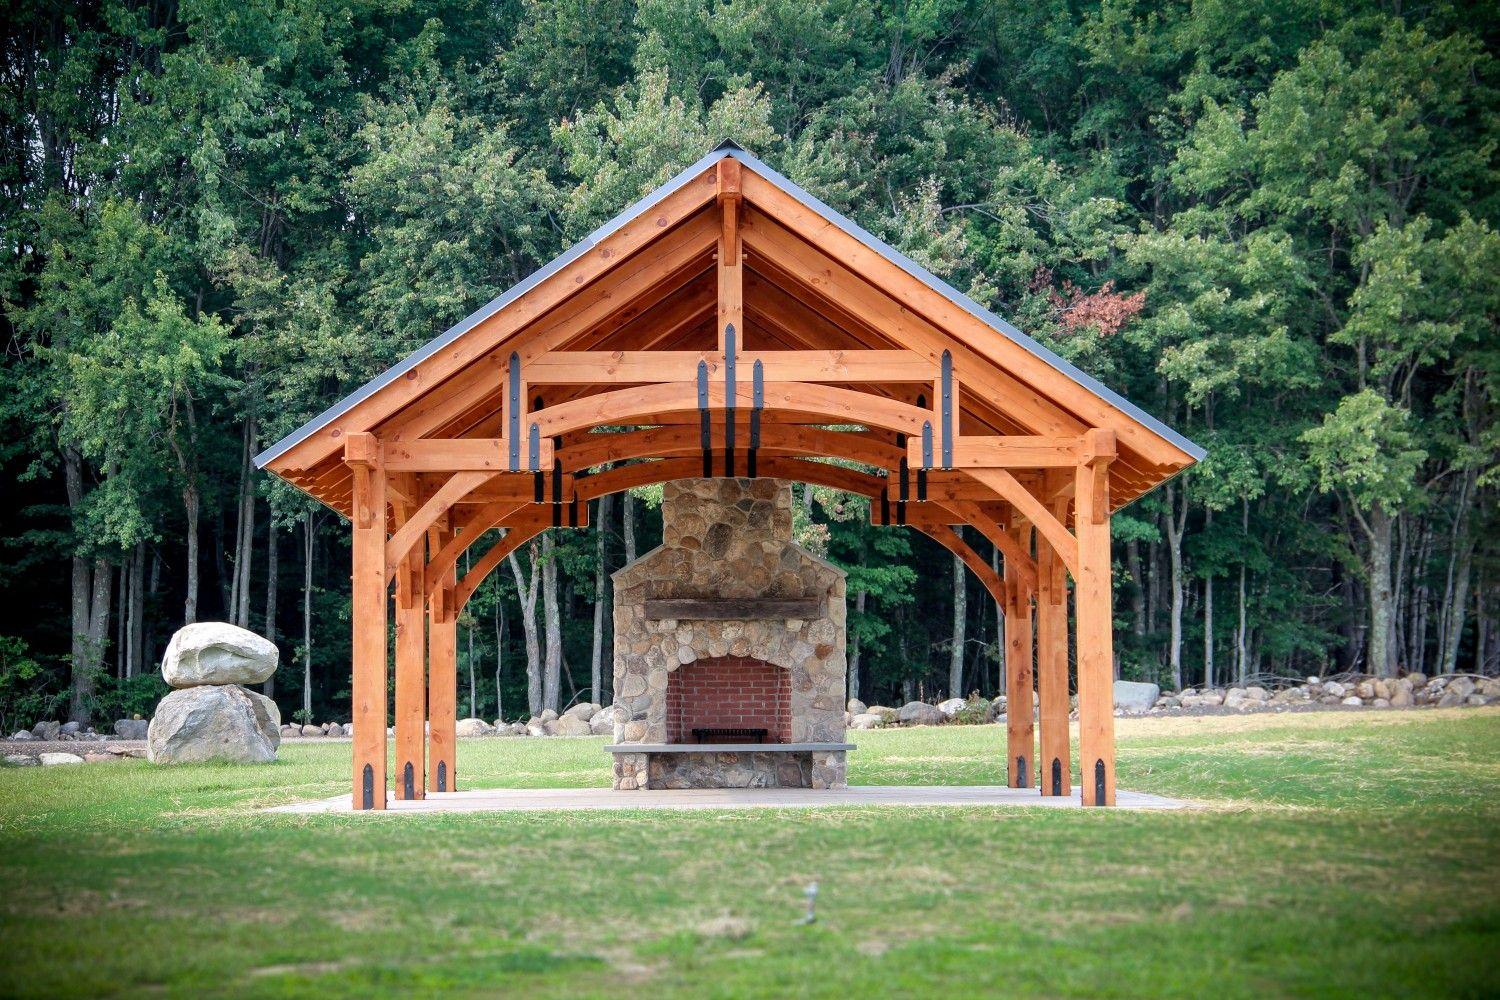 Sheds garages post beam barns pavilions for ct ma for Maine post and beam kits